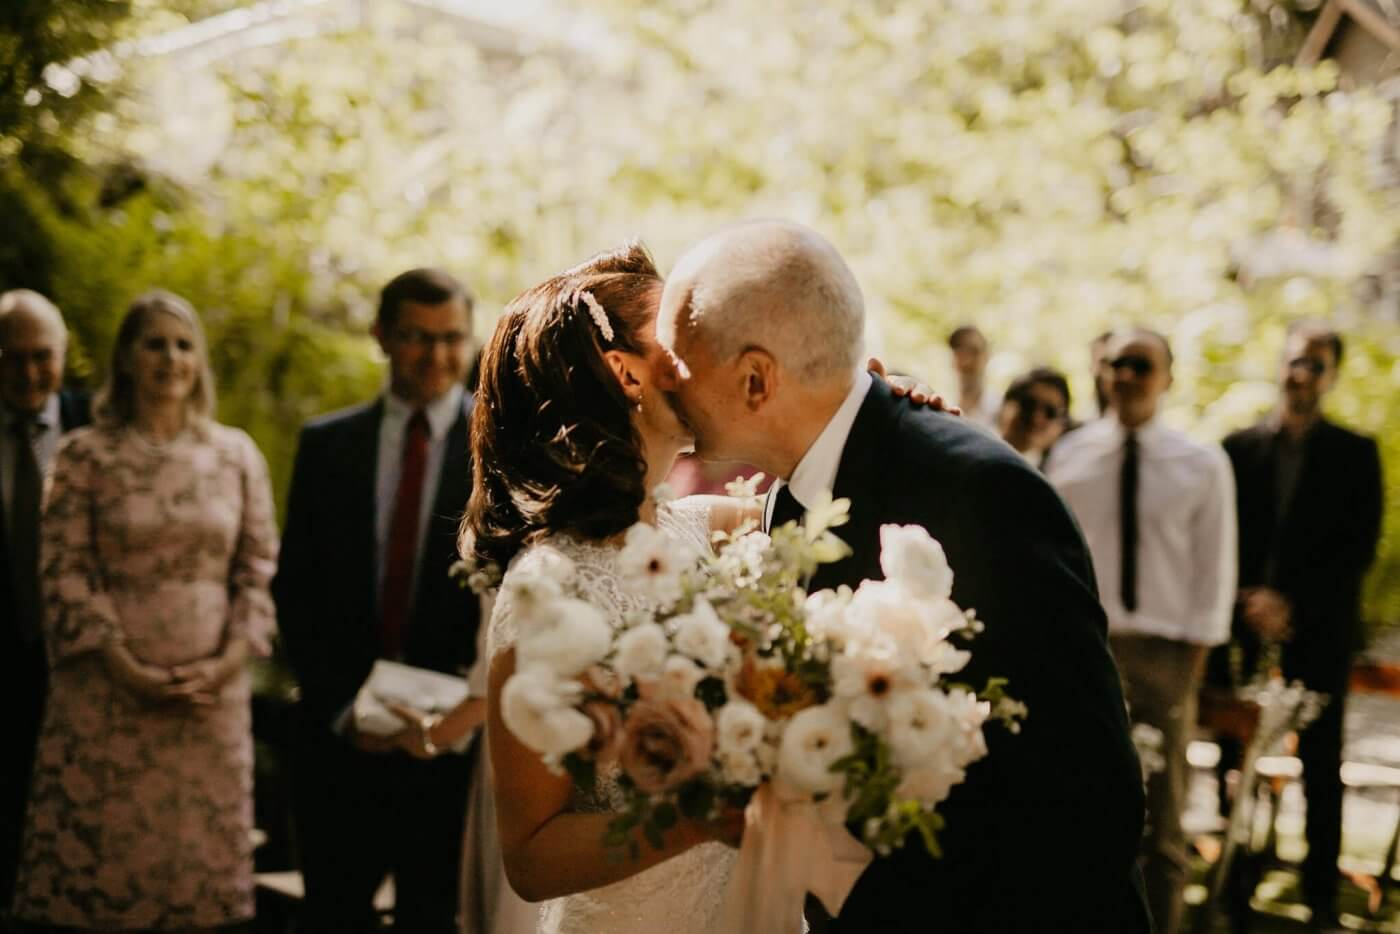 Wedding Photography | The Mustcard